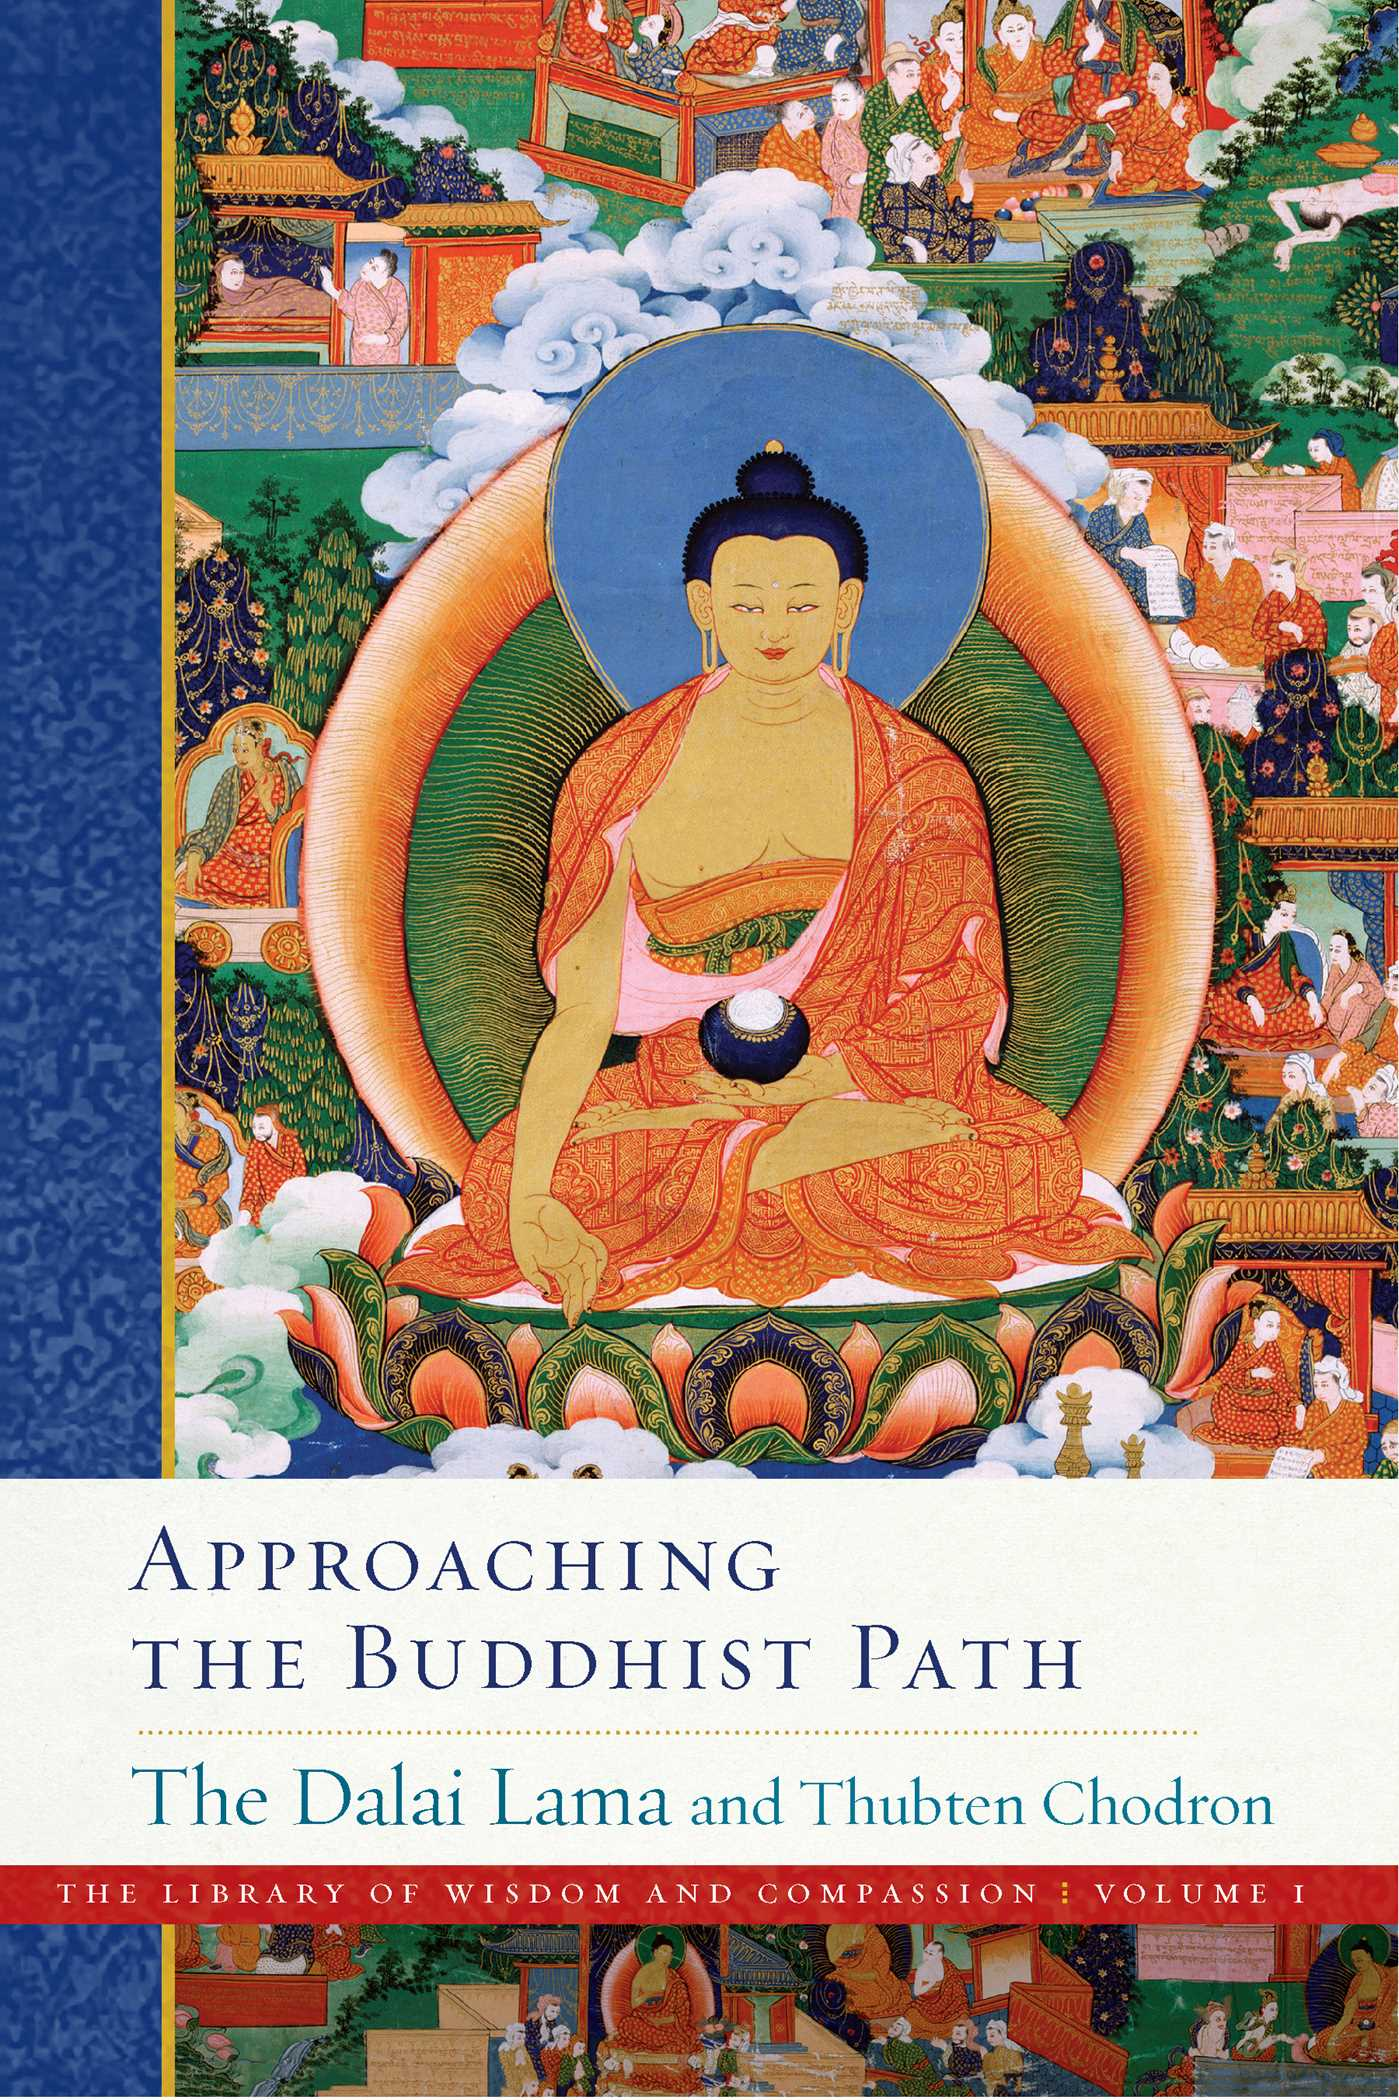 Approaching the buddhist path 9781614294412 hr